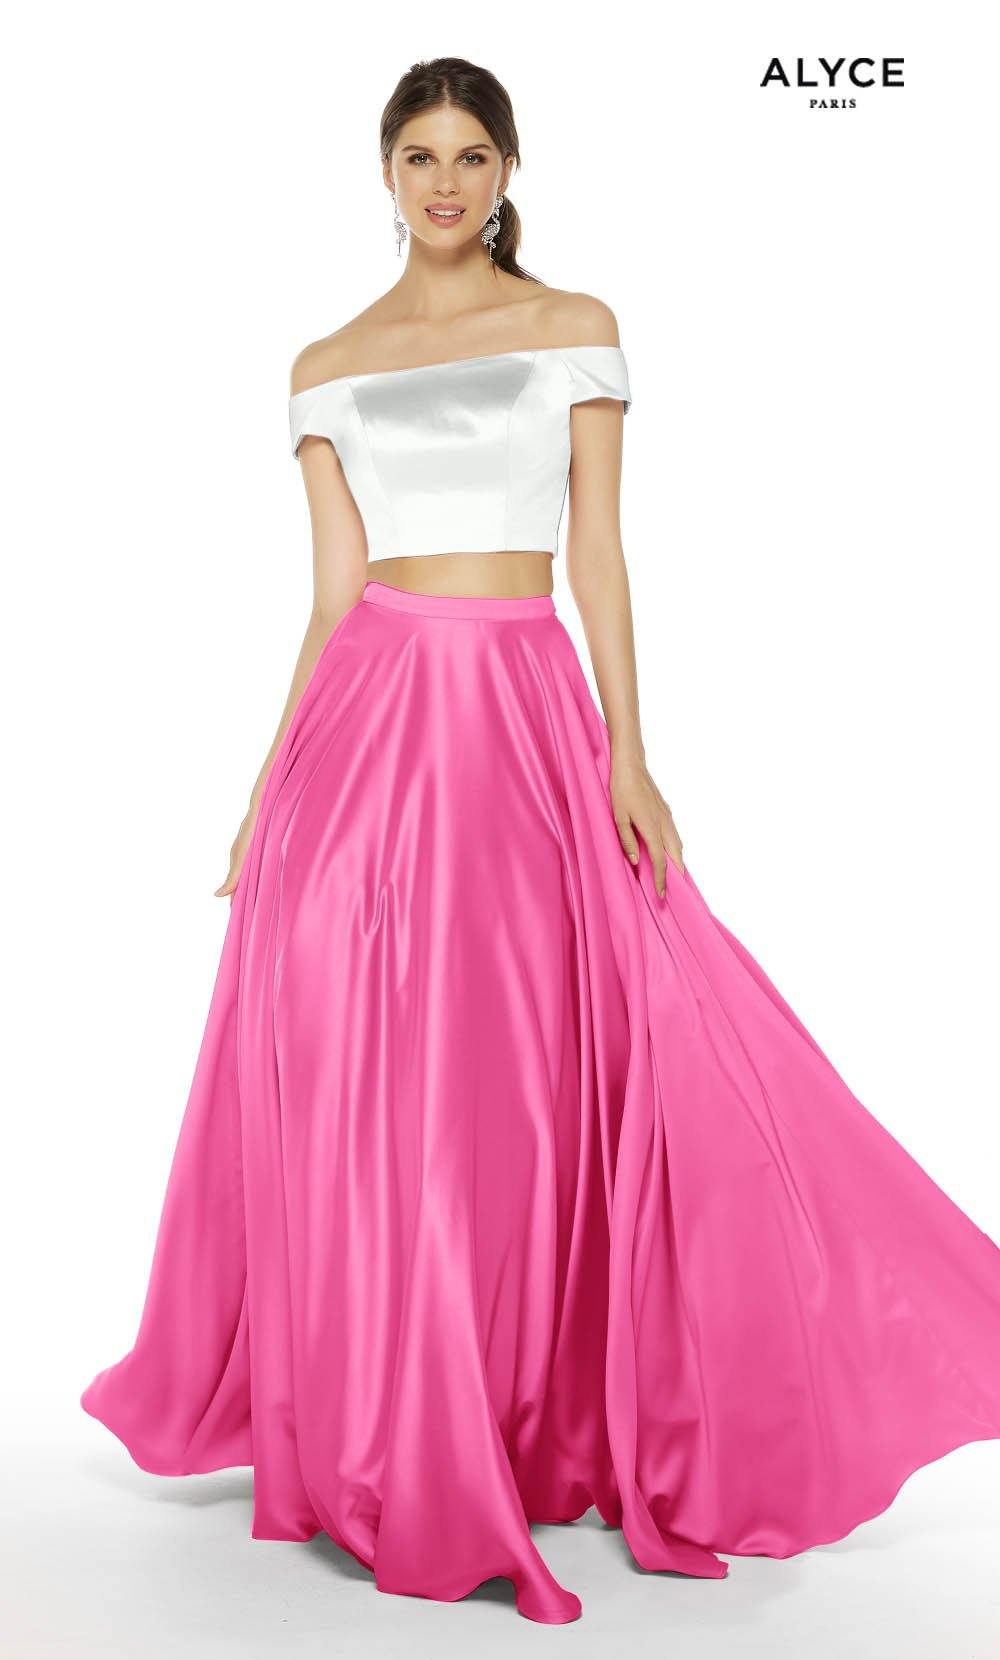 Diamond White-Bubblegum satin off the shoulder two piece prom dress